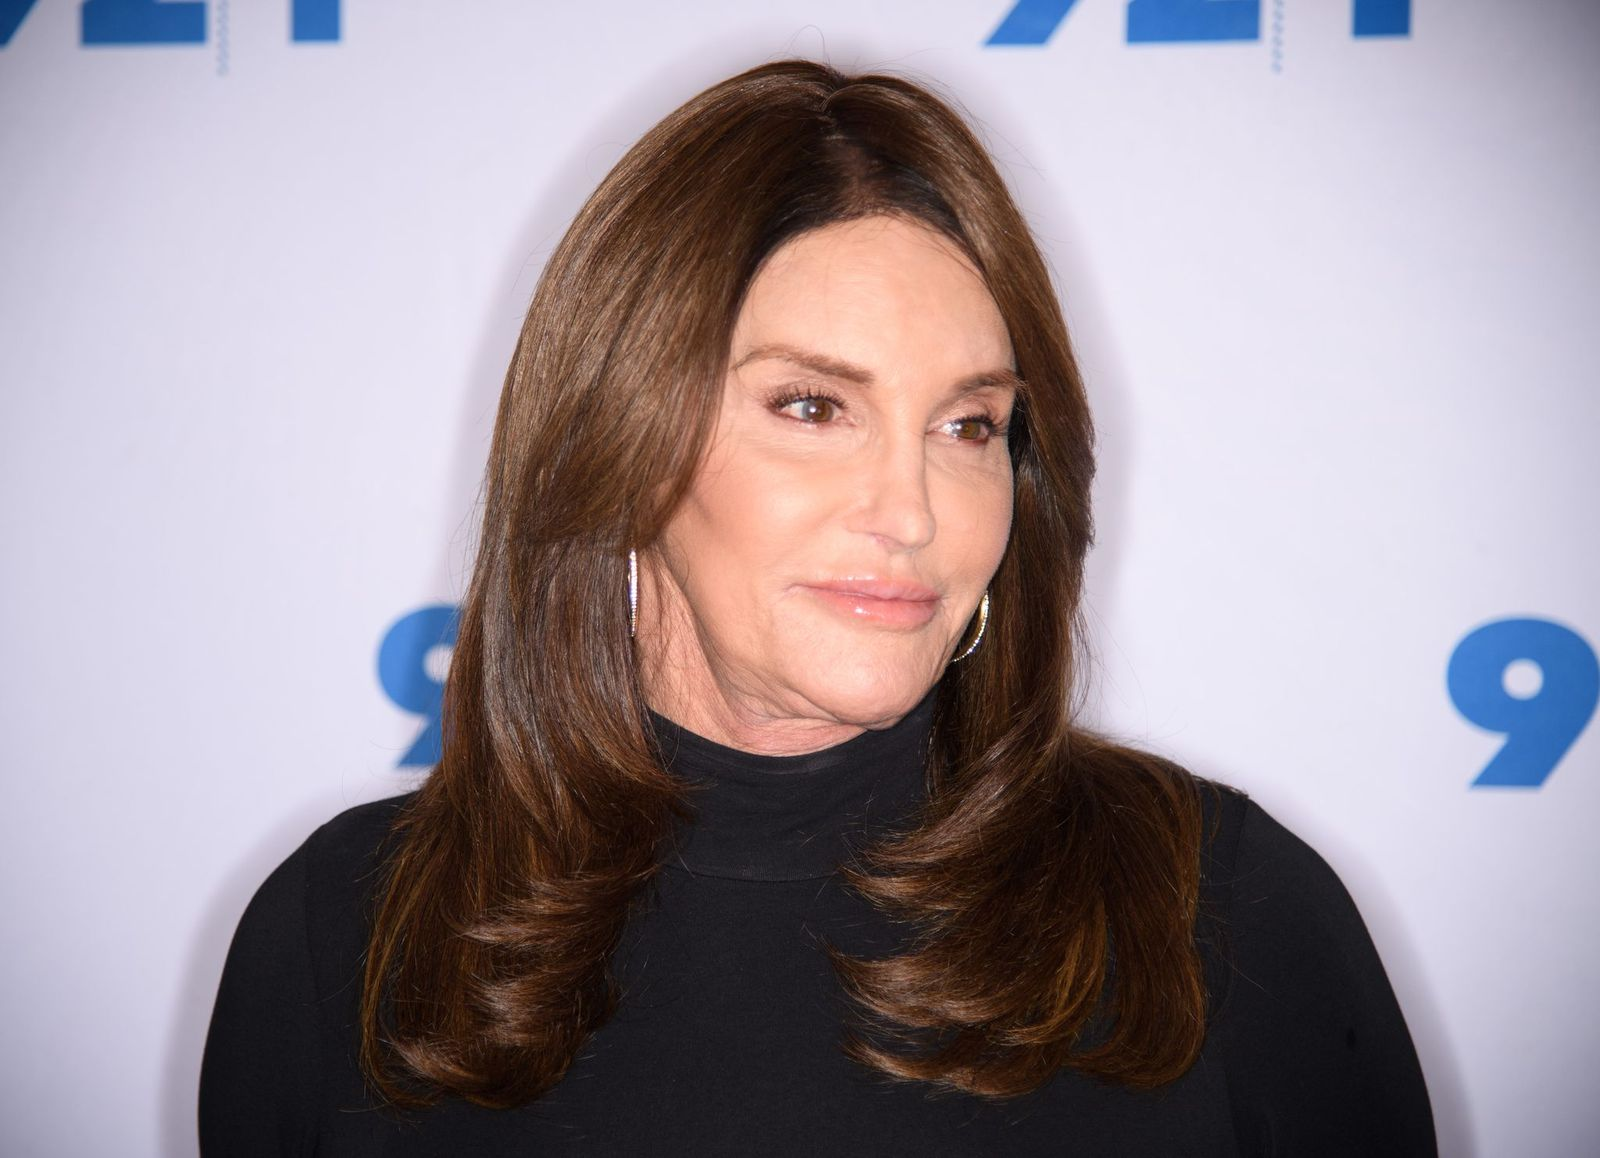 Caitlyn Jenner at the Transgender Identity and Courage event at the 92nd Street Y on April 25, 2017 | Photo: Getty Images